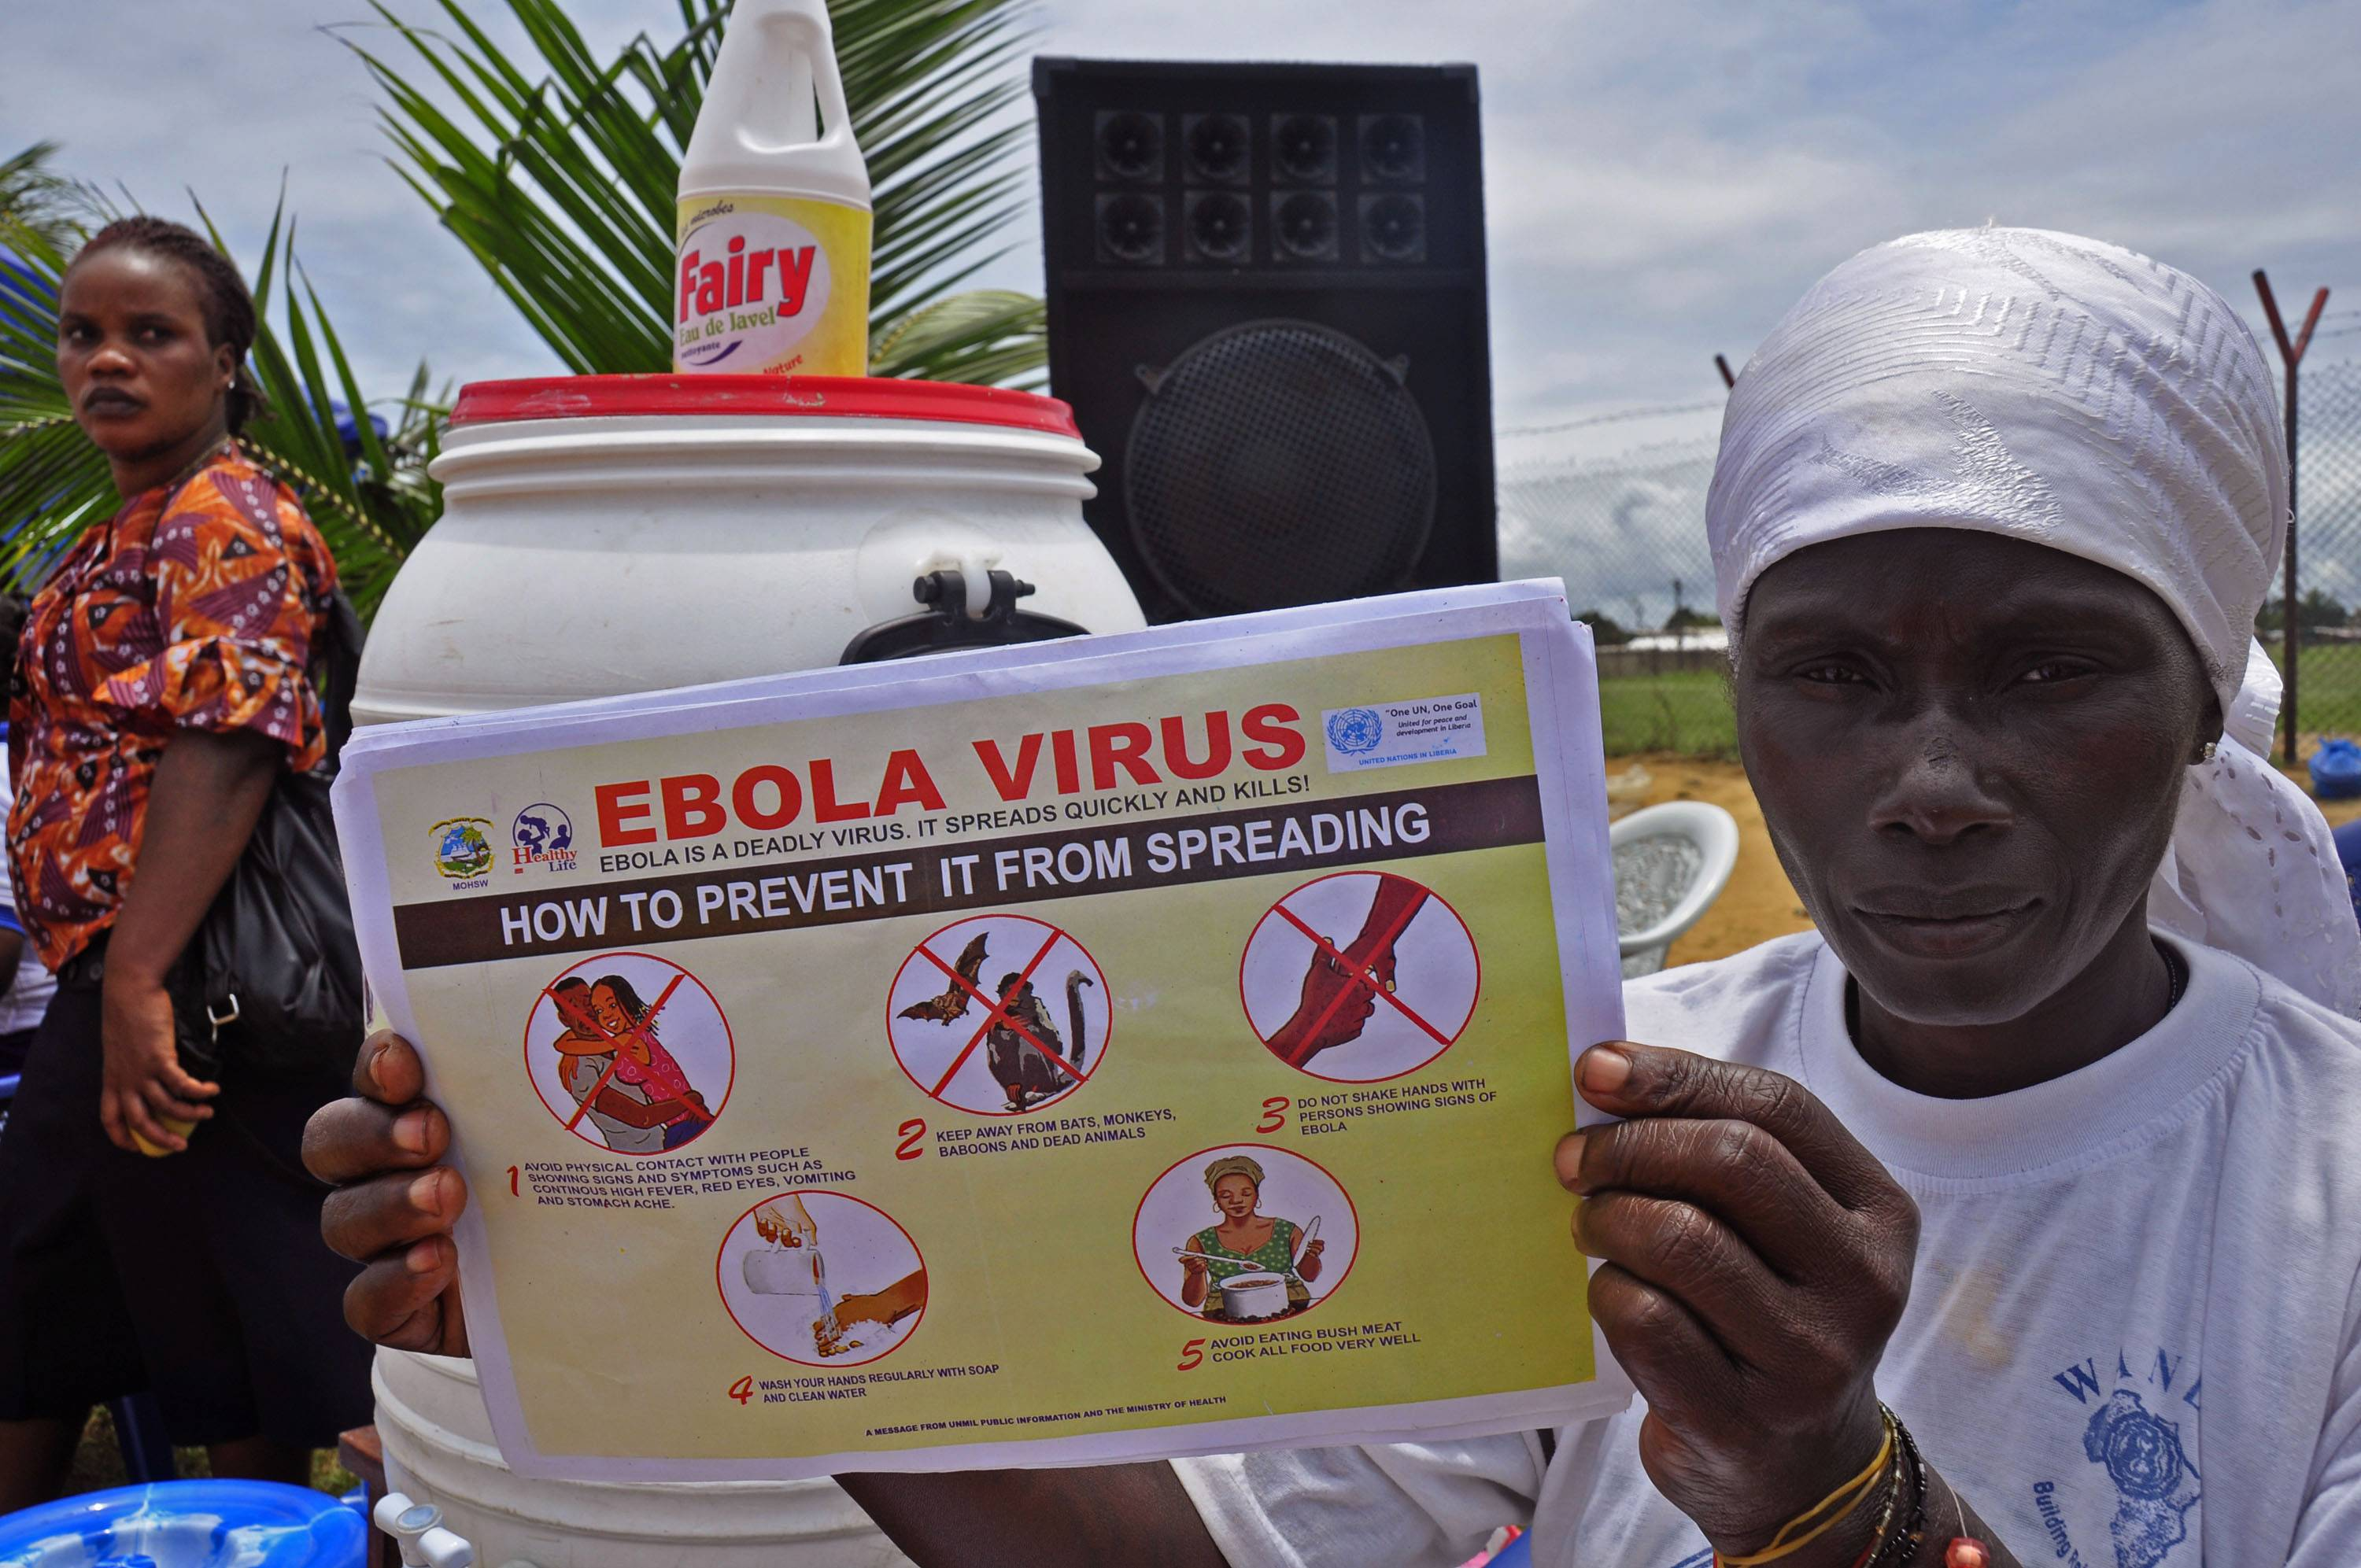 A Liberian woman holds up a pamphlet Thursday with guidance on how to prevent the Ebola virus from spreading.